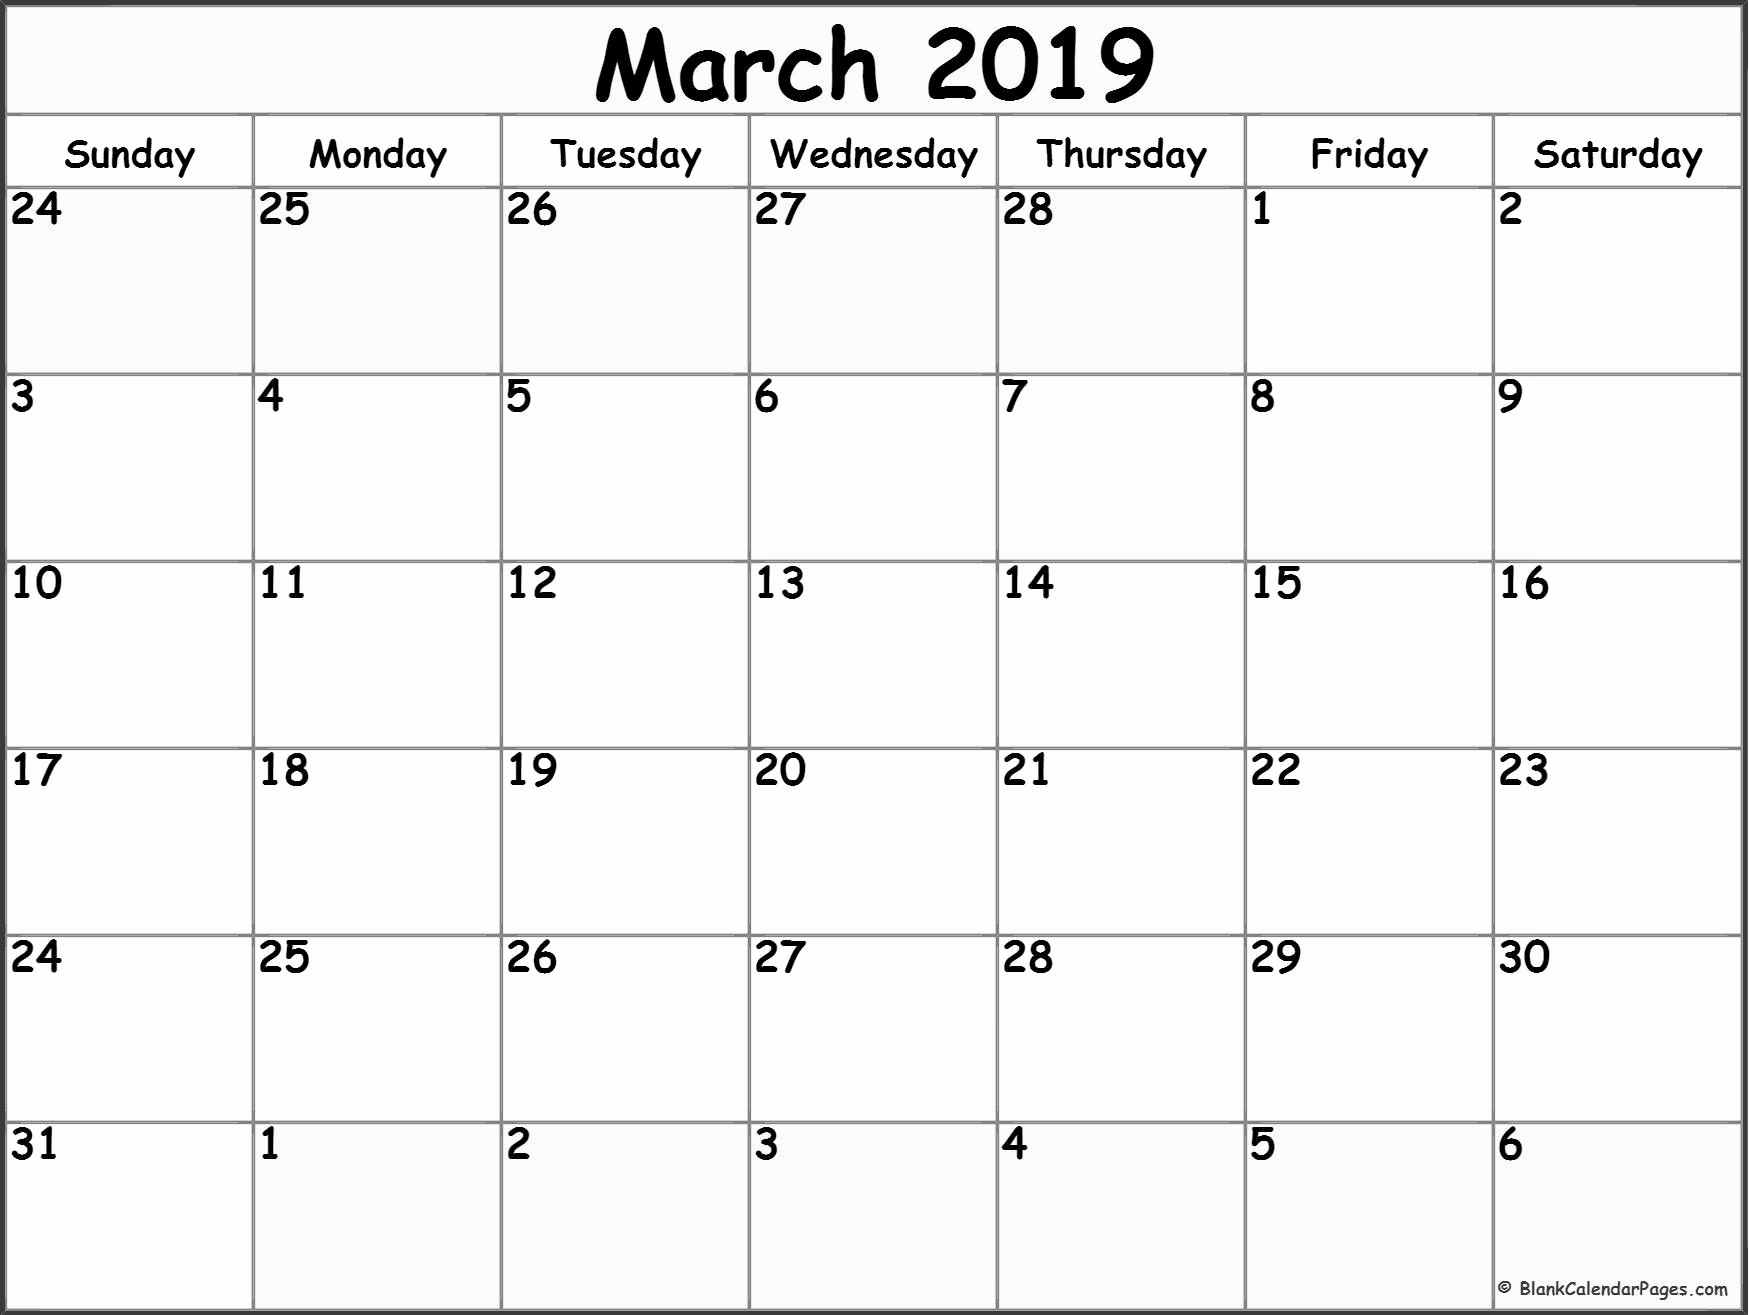 March 2019 Calendar Printable Template